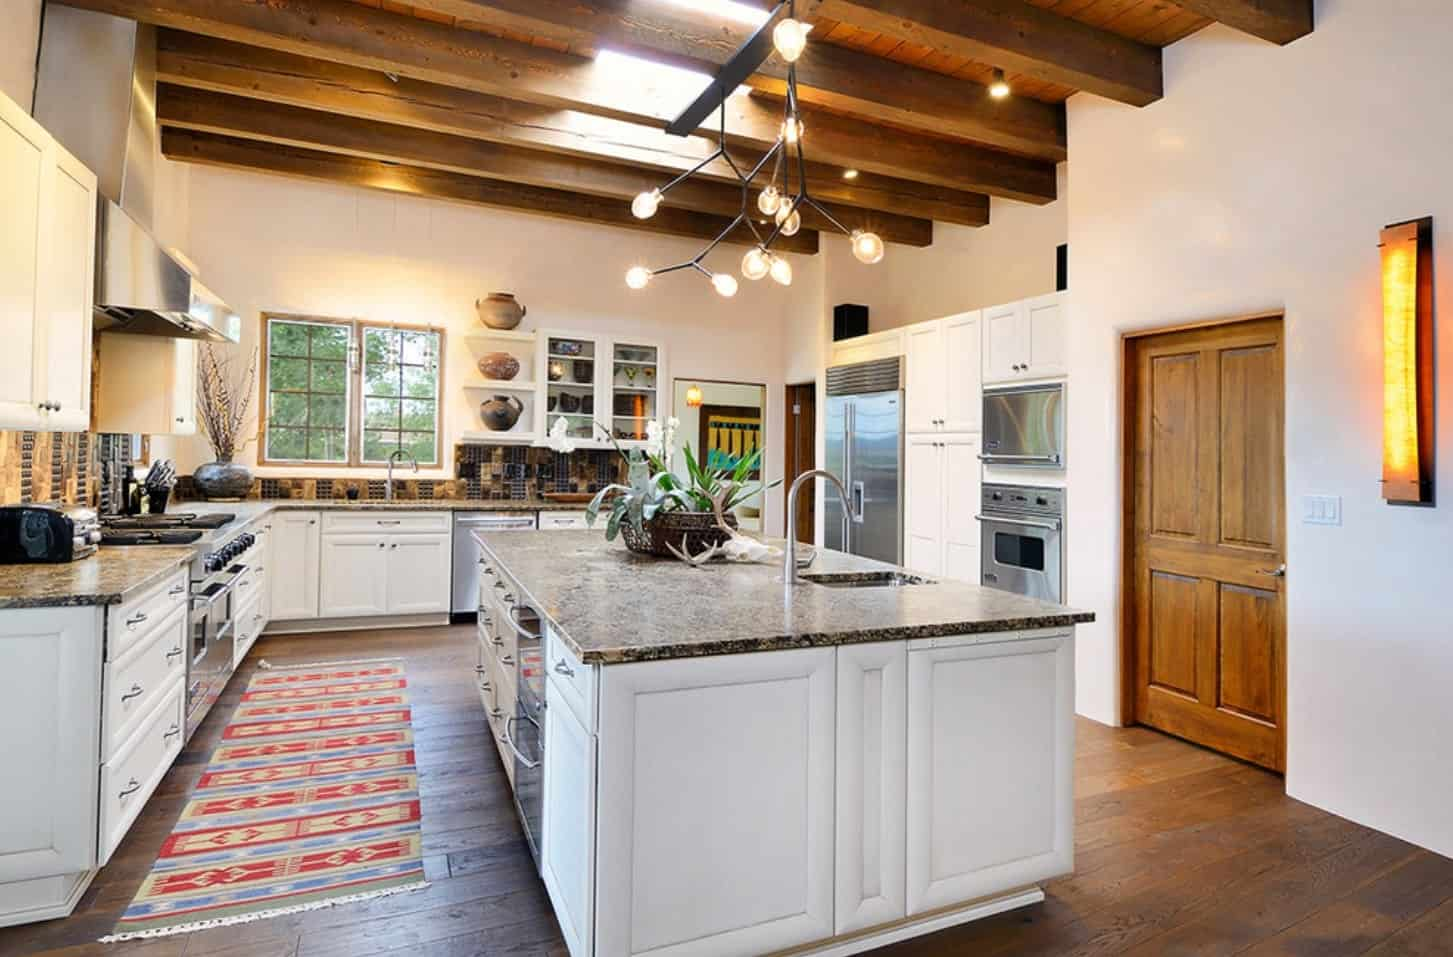 White kitchen with wood beam ceiling and hardwood flooring. It features a statement chandelier that hung over the breakfast island.